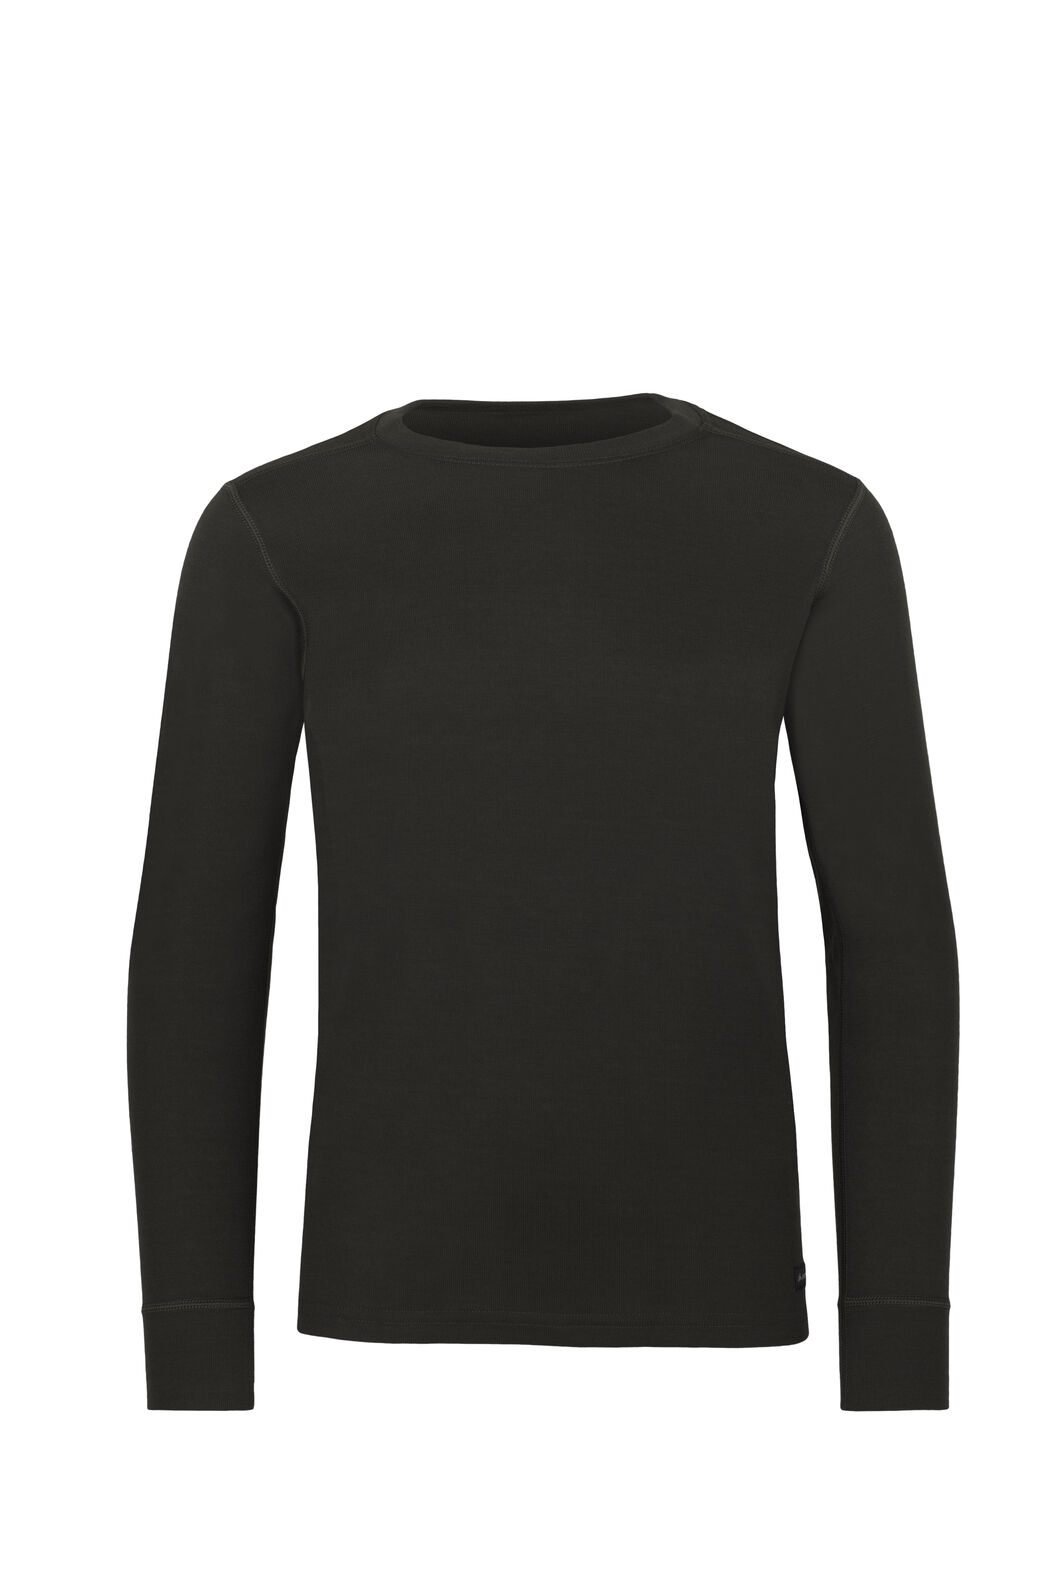 Macpac Geothermal Long Sleeve Top - Kids', Black, hi-res